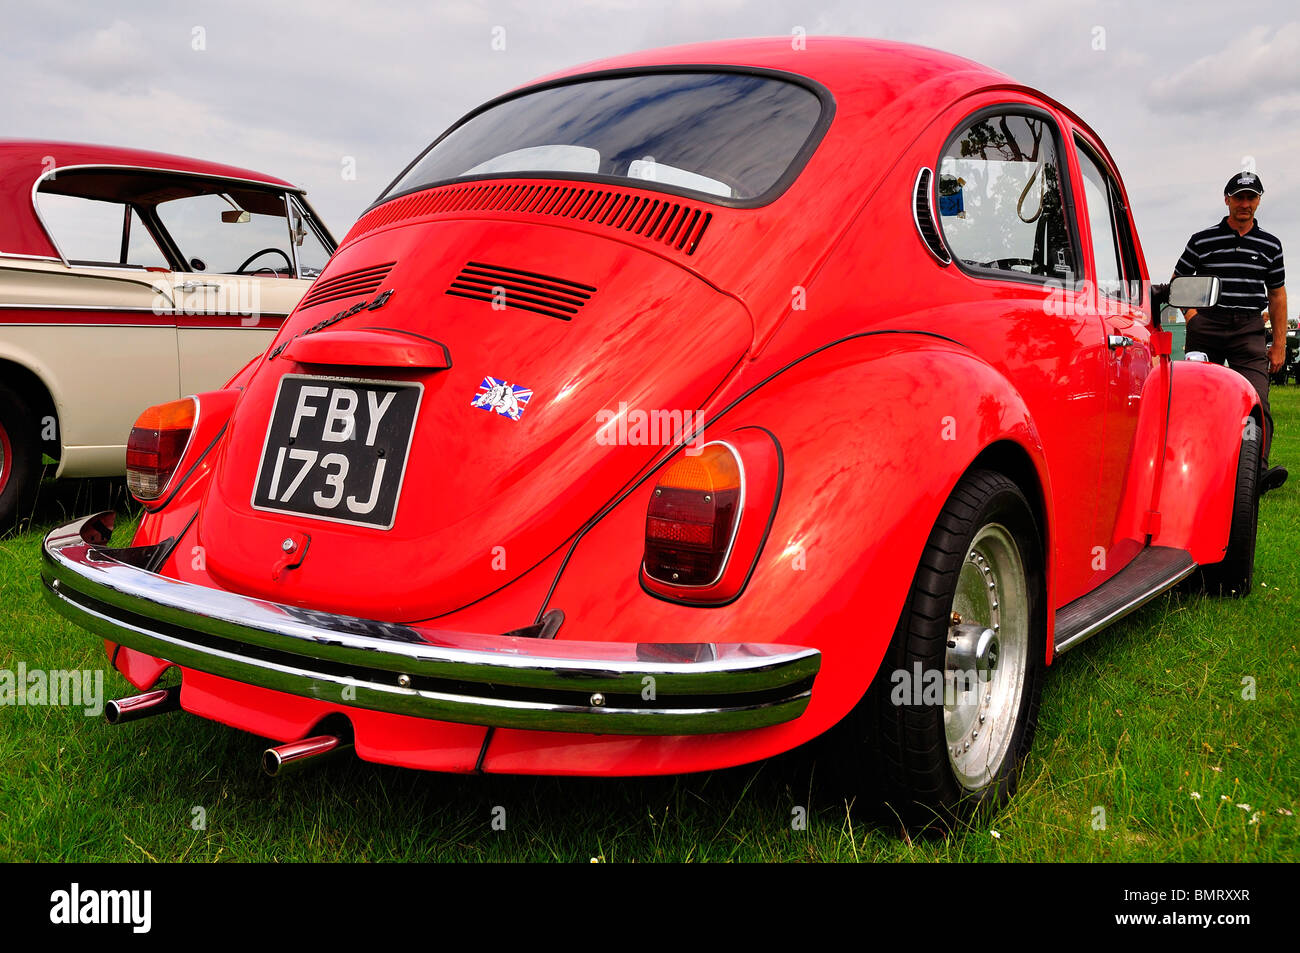 VW Beetle at Classic Car Show in Luton 2010 - Stock Image